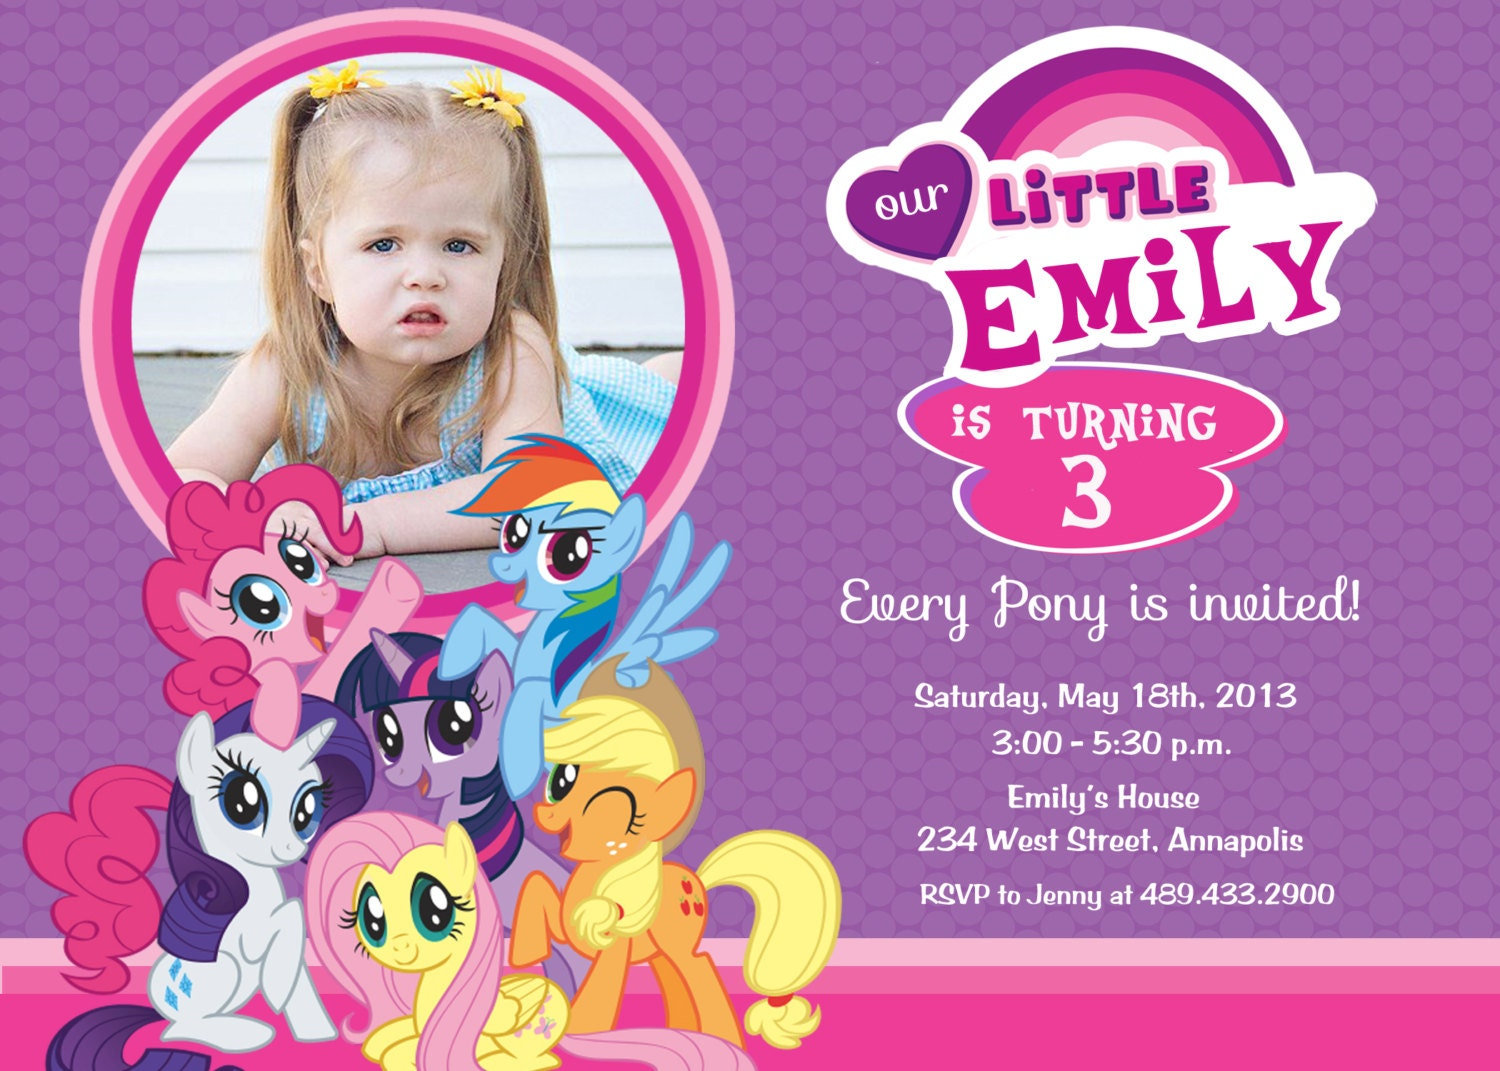 My Little Pony Personalized Birthday Invitations is perfect invitation ideas